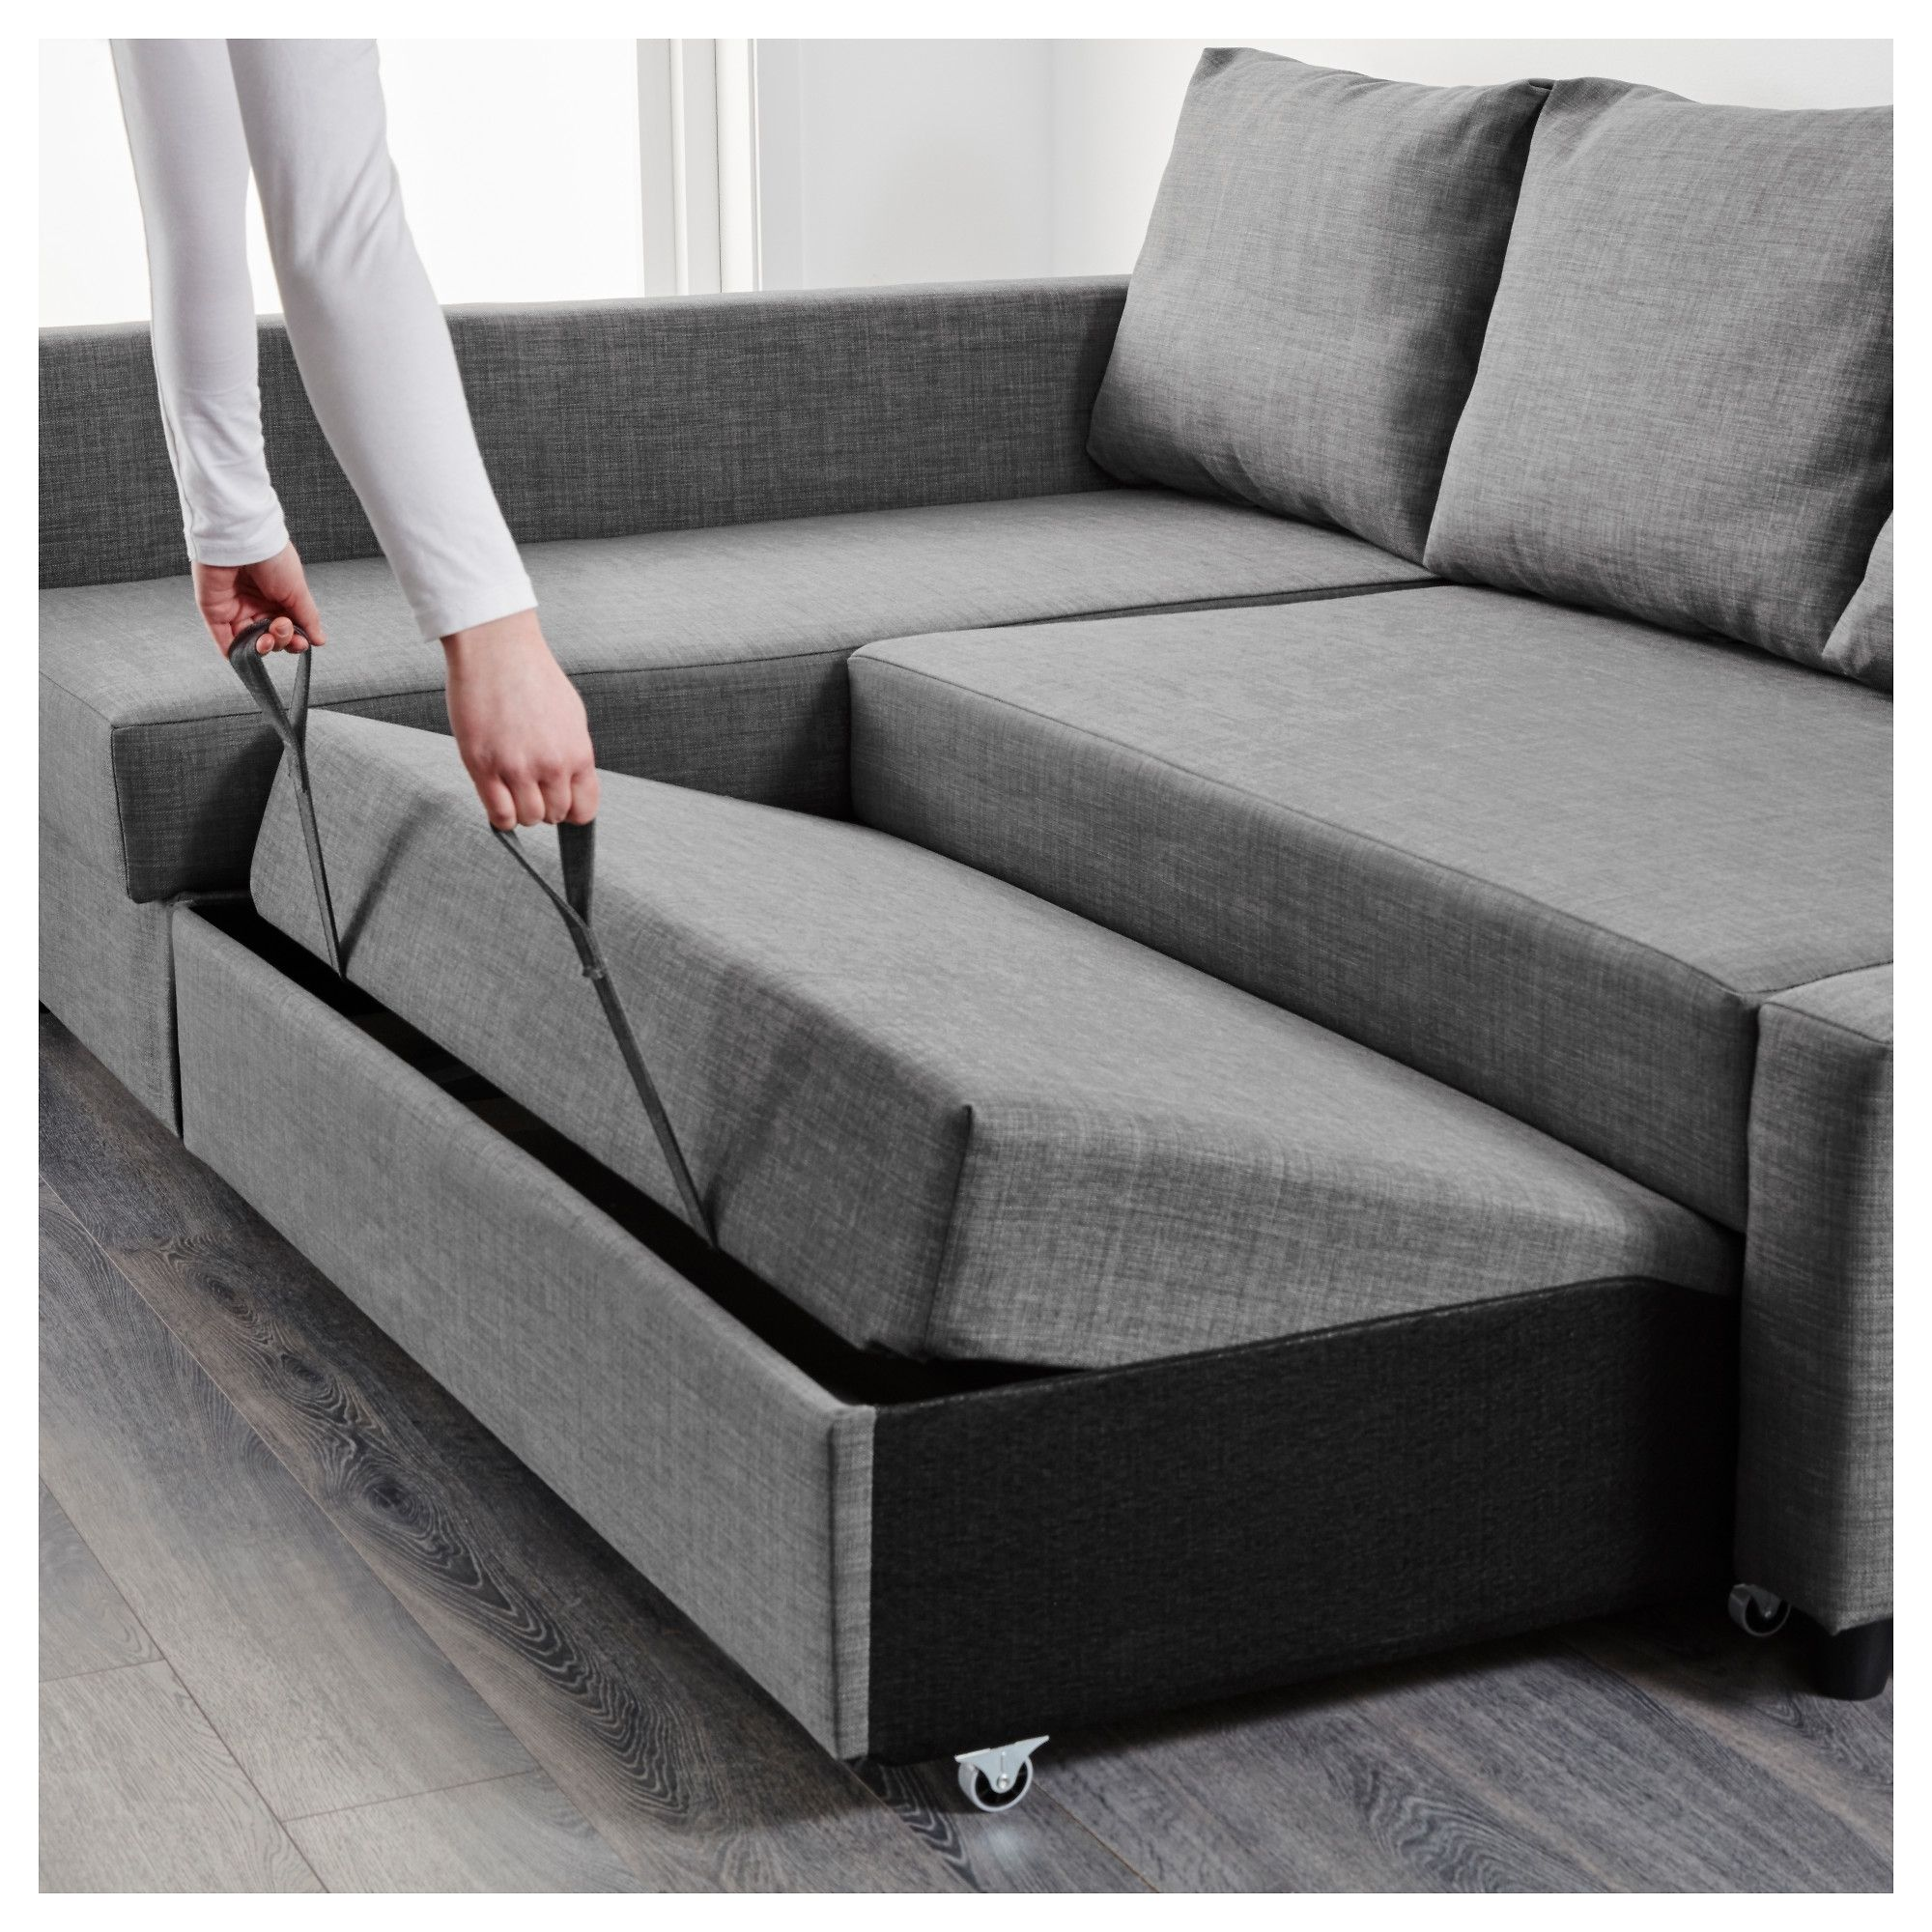 Ikea Corner Sofas With Storage in 2019 | Living Area | Corner sofa ...